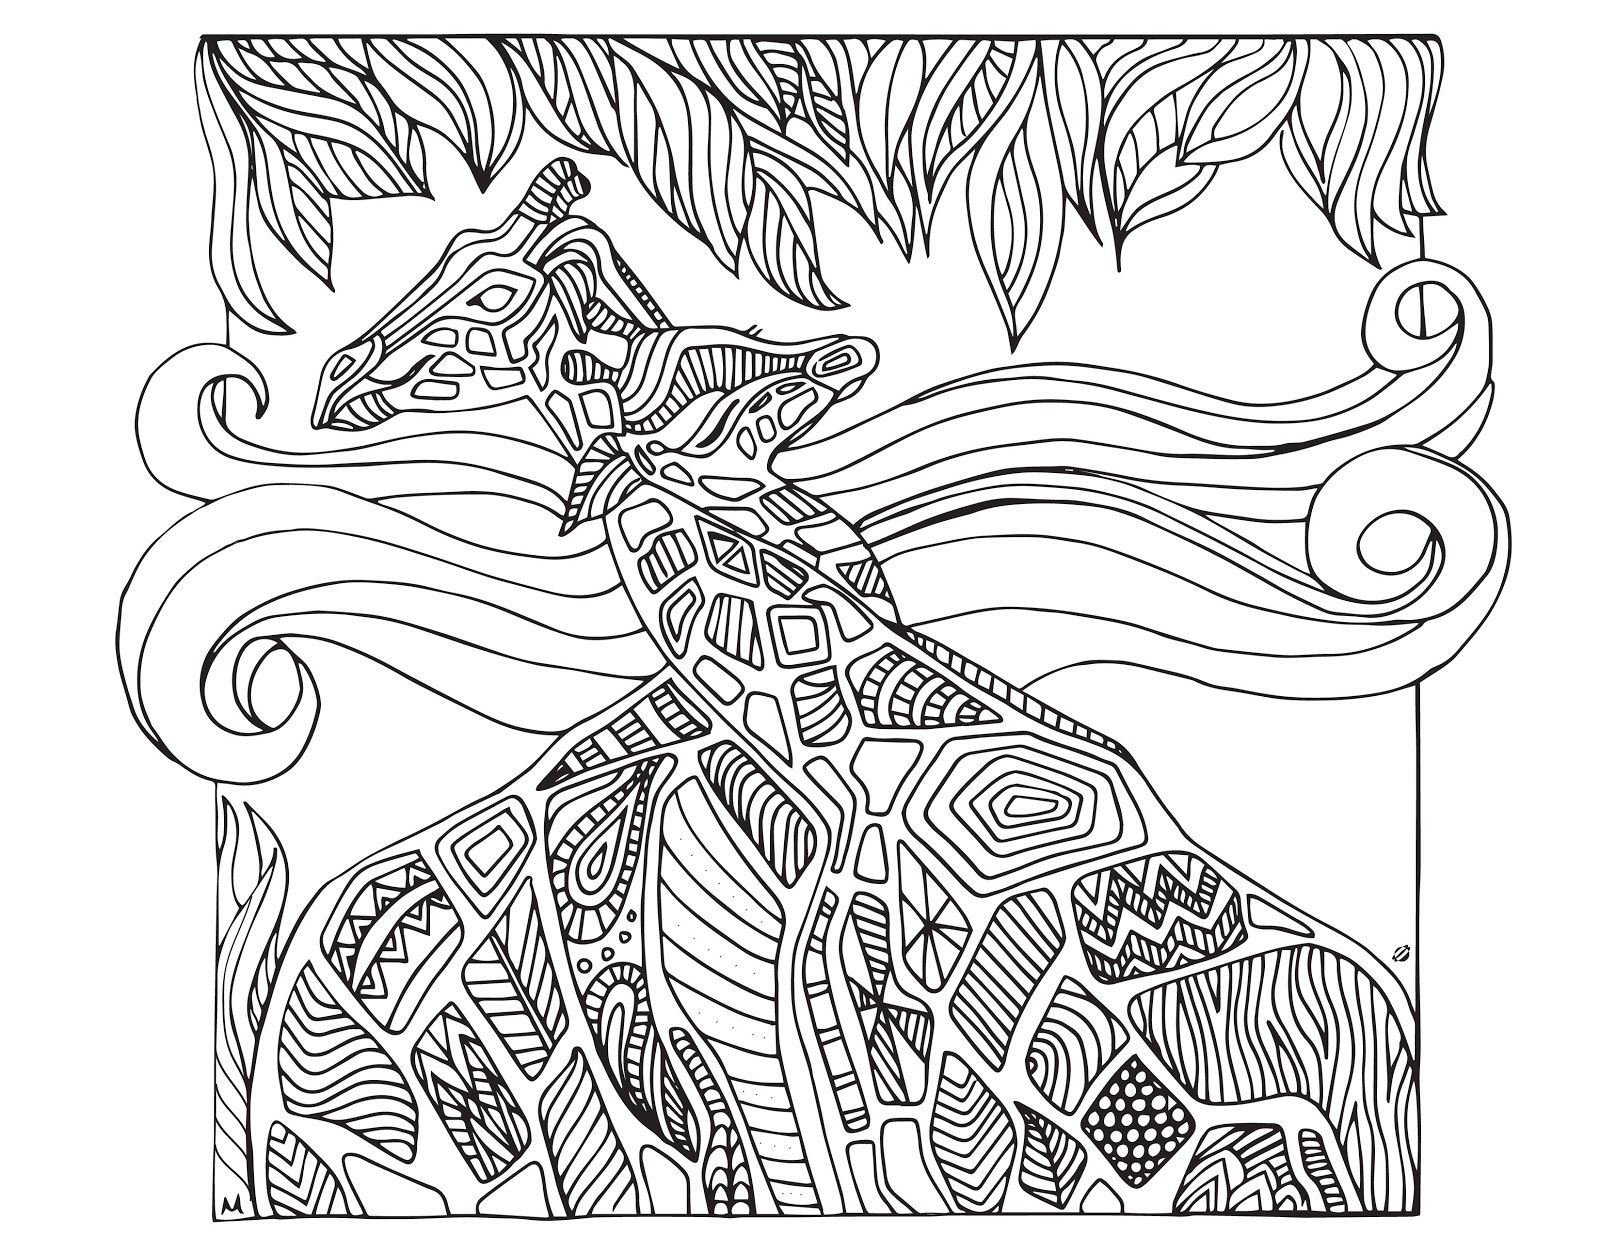 grown up colouring sheets giraffes - Grown Up Coloring